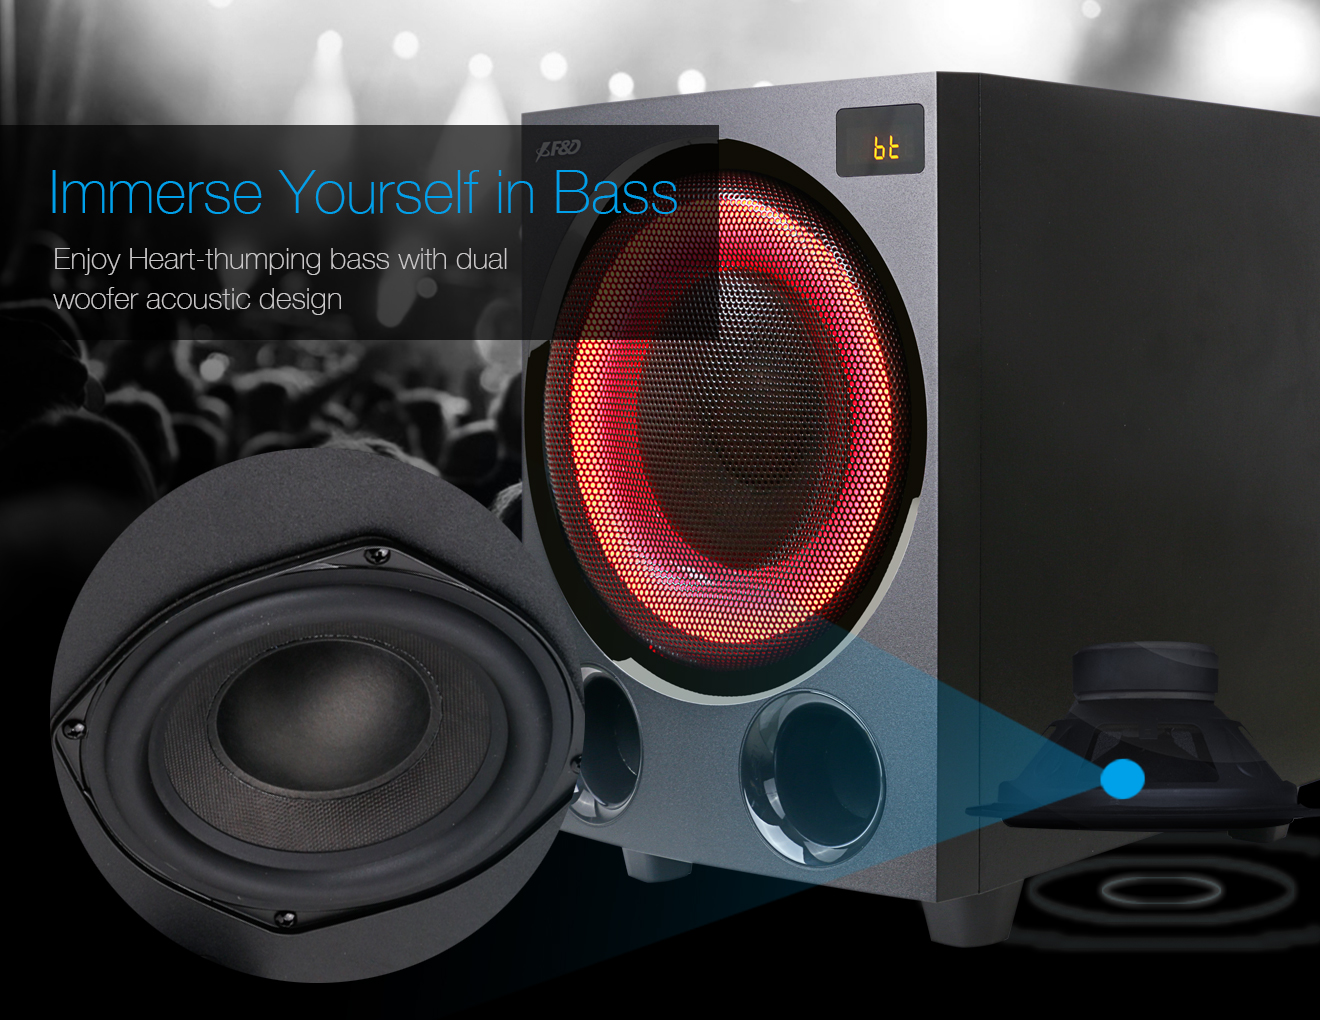 immerse Yourself in Bass